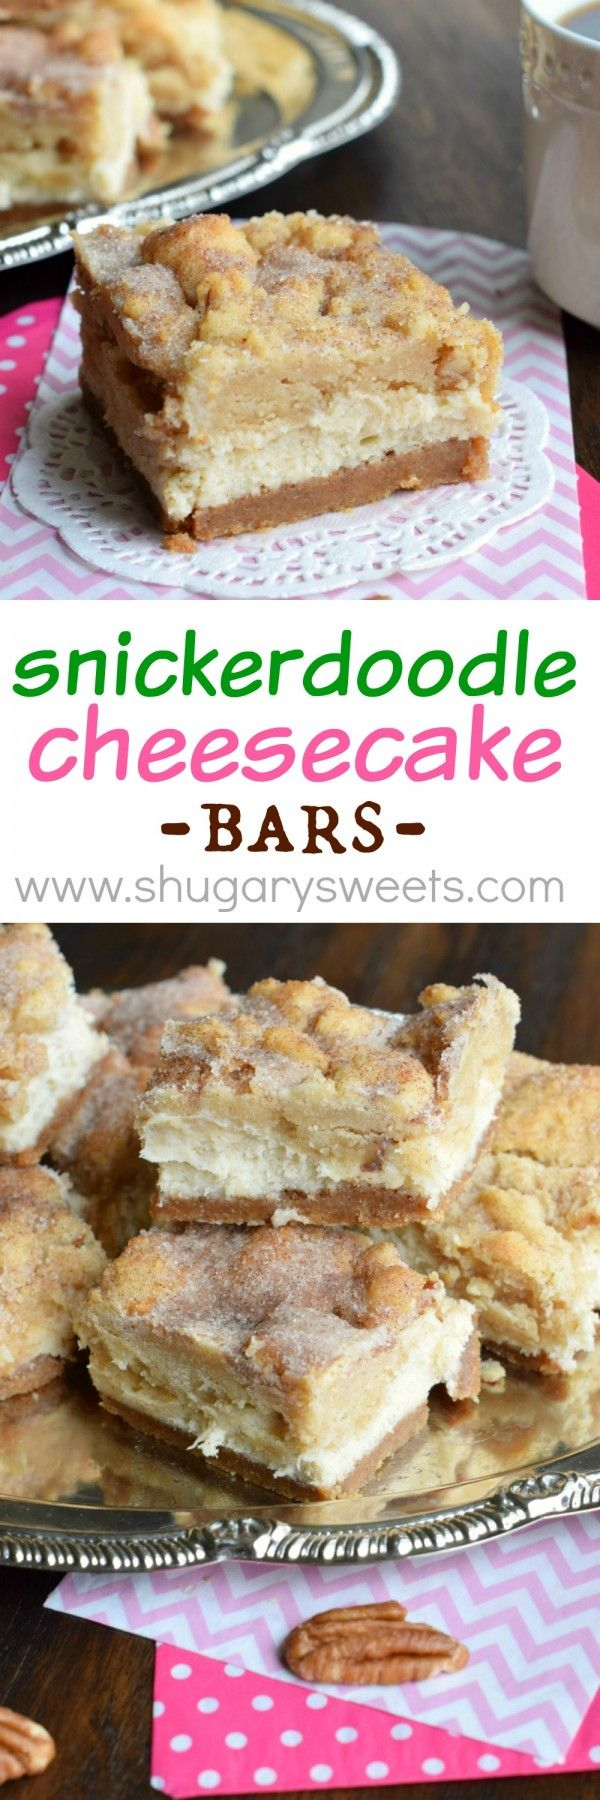 Snickerdoodle Cheesecake Bars: delicious sweet and salty crust, creamy cheesecake filling topped with a cinnamon sugar pecan cookie! #thinkfisher